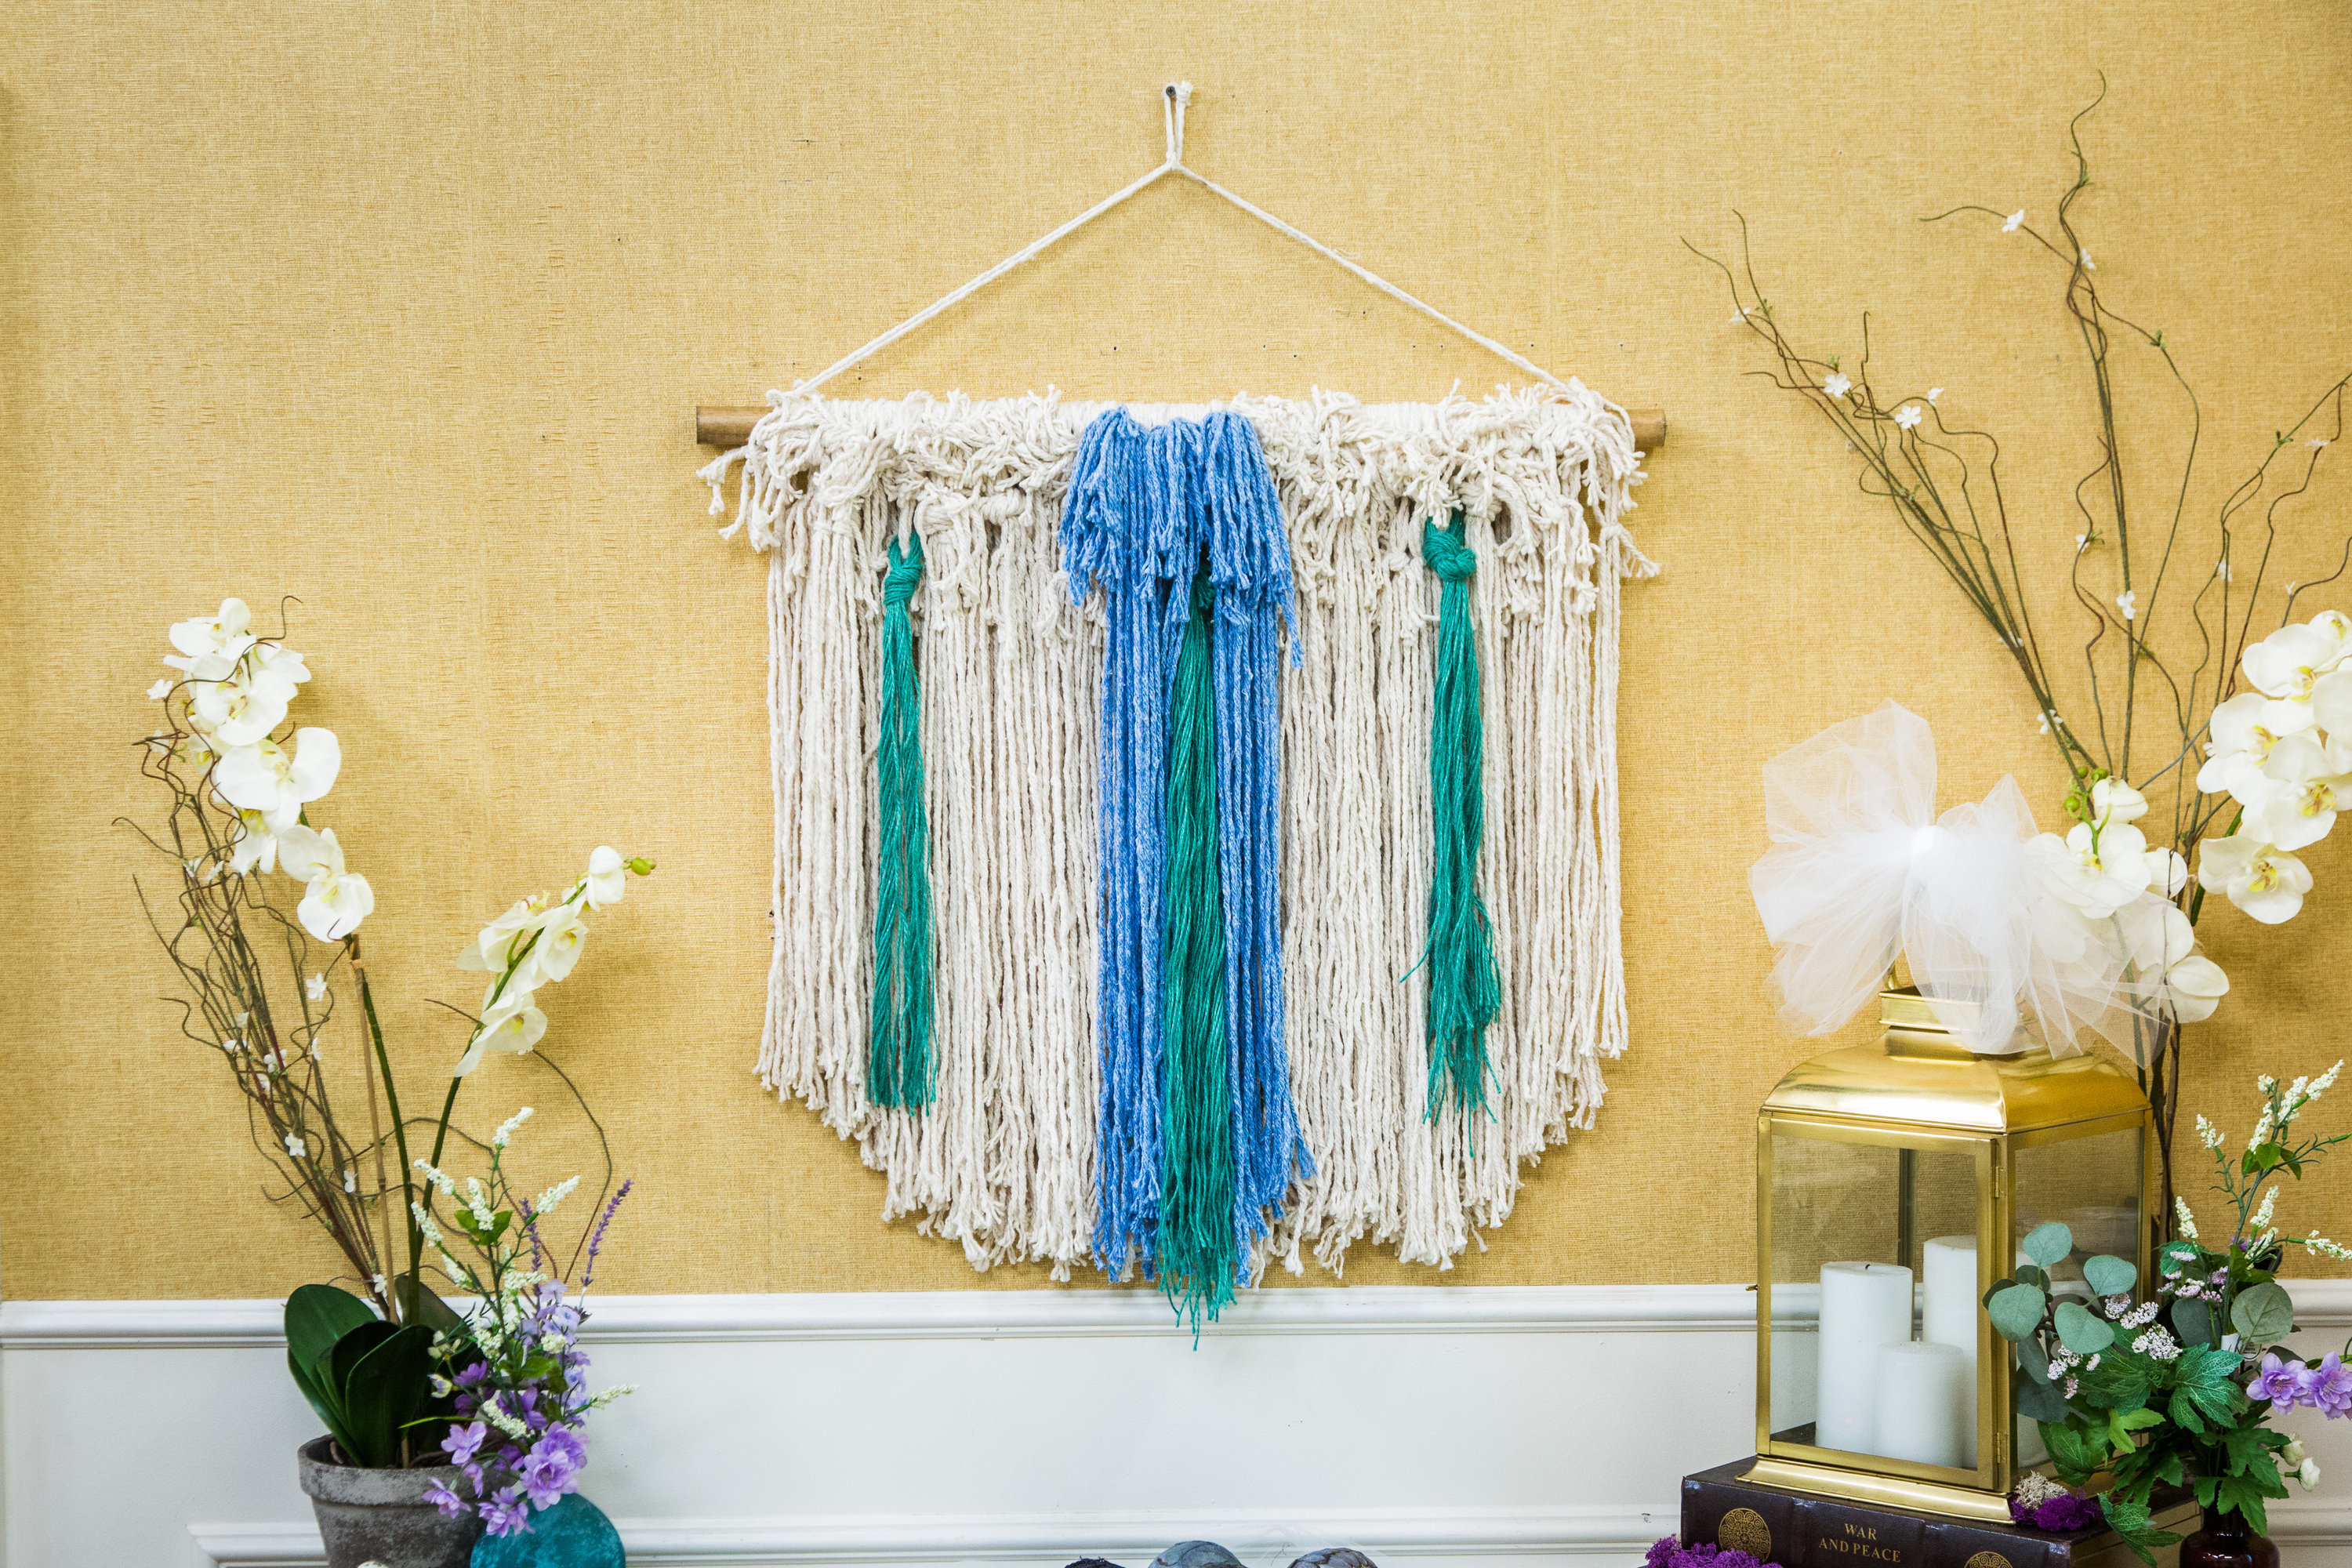 How To - DIY Woven Wall Art | Hallmark Channel